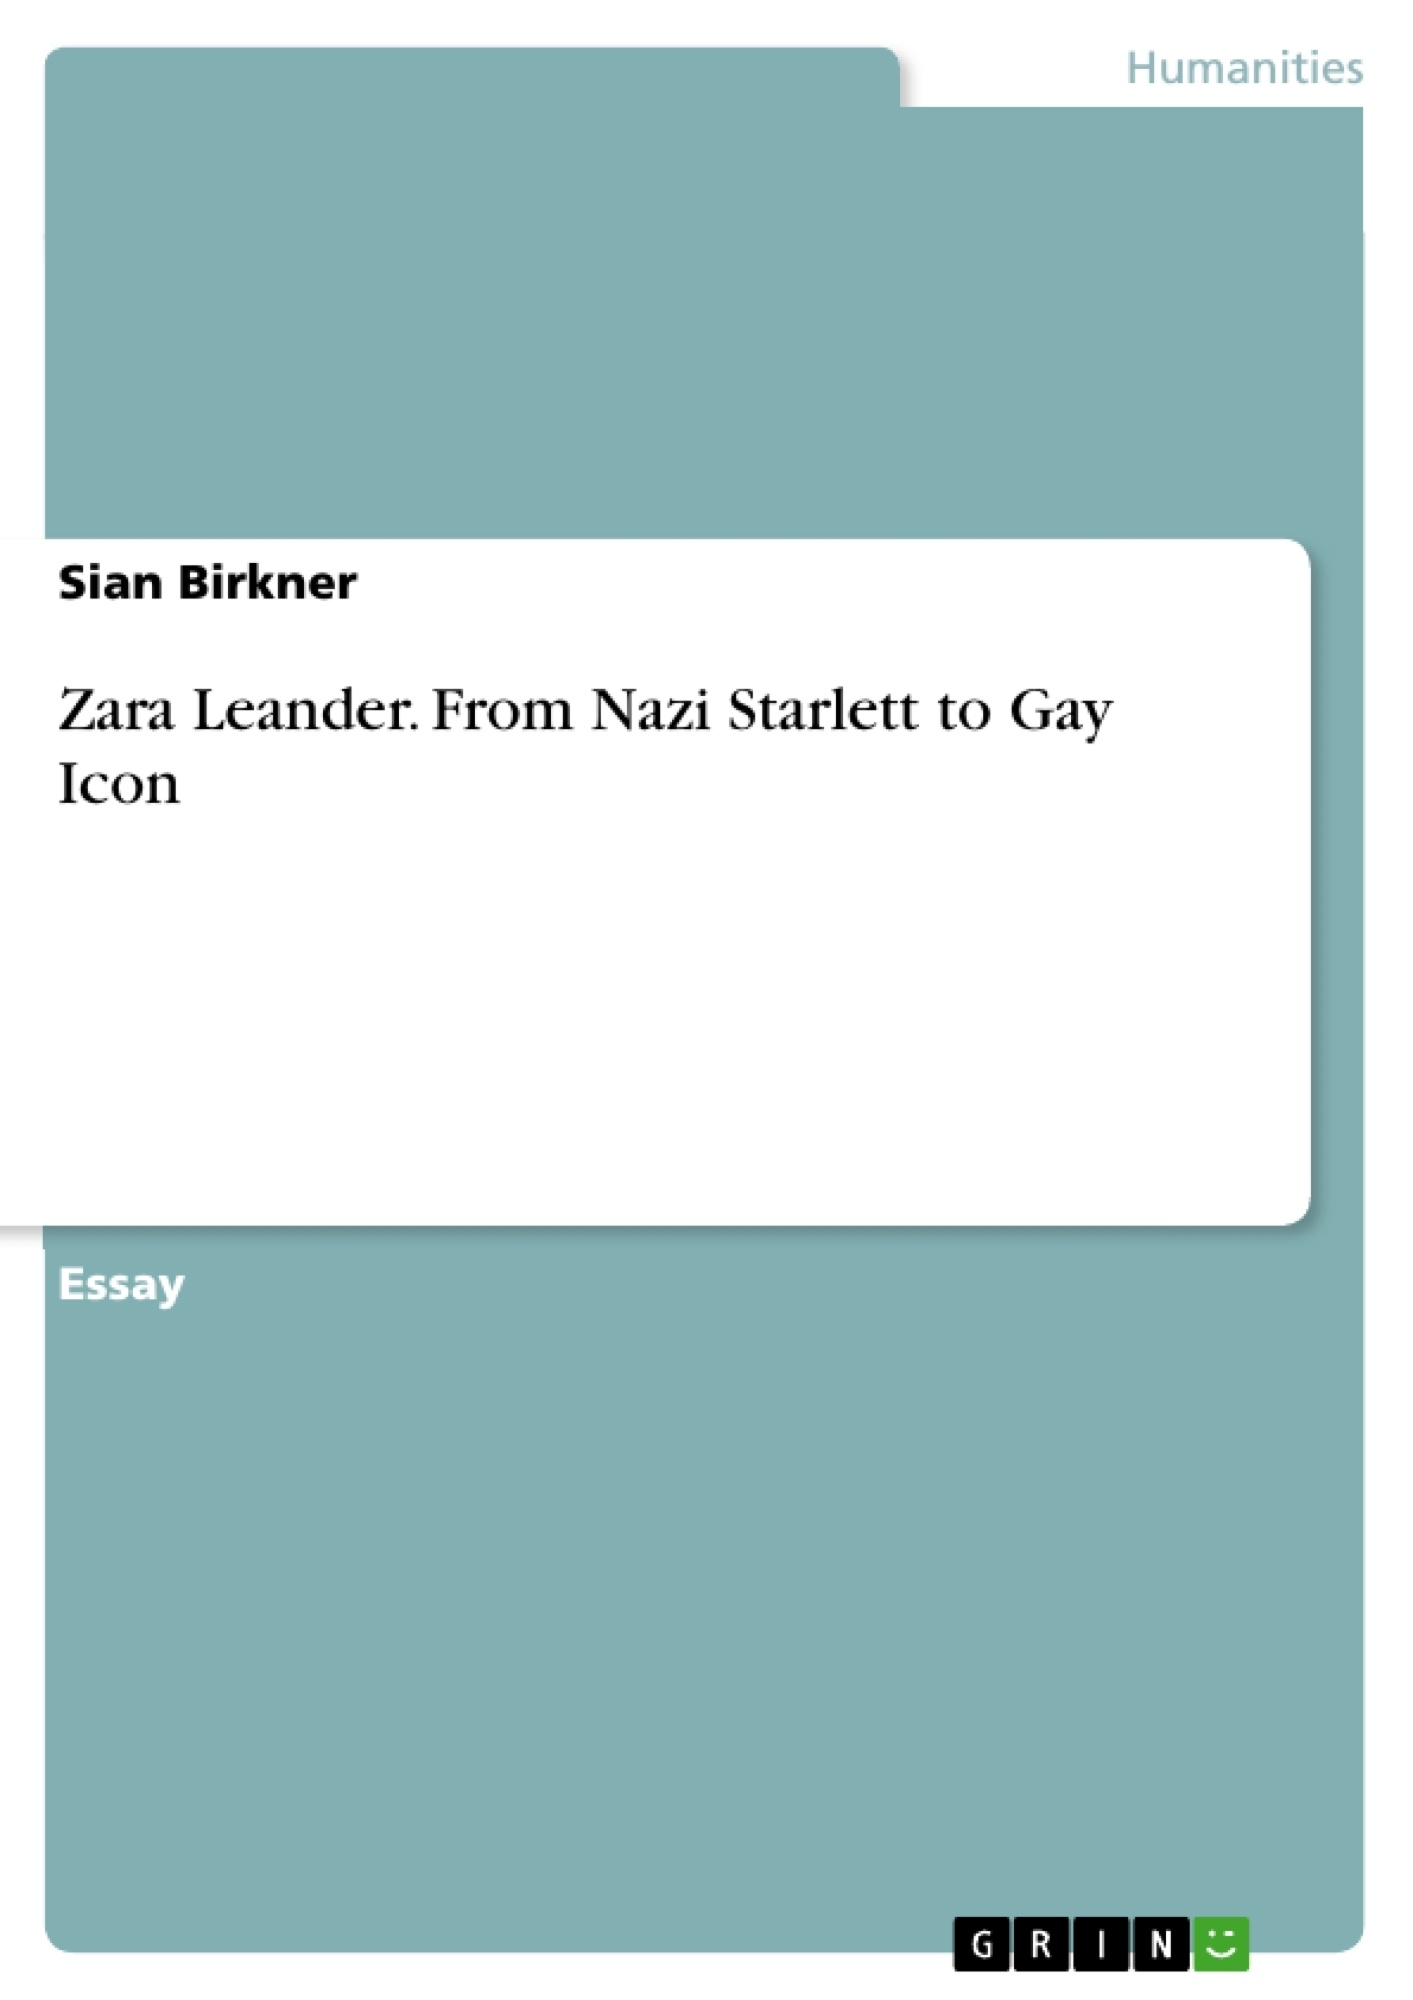 Title: Zara Leander. From Nazi Starlett to Gay Icon